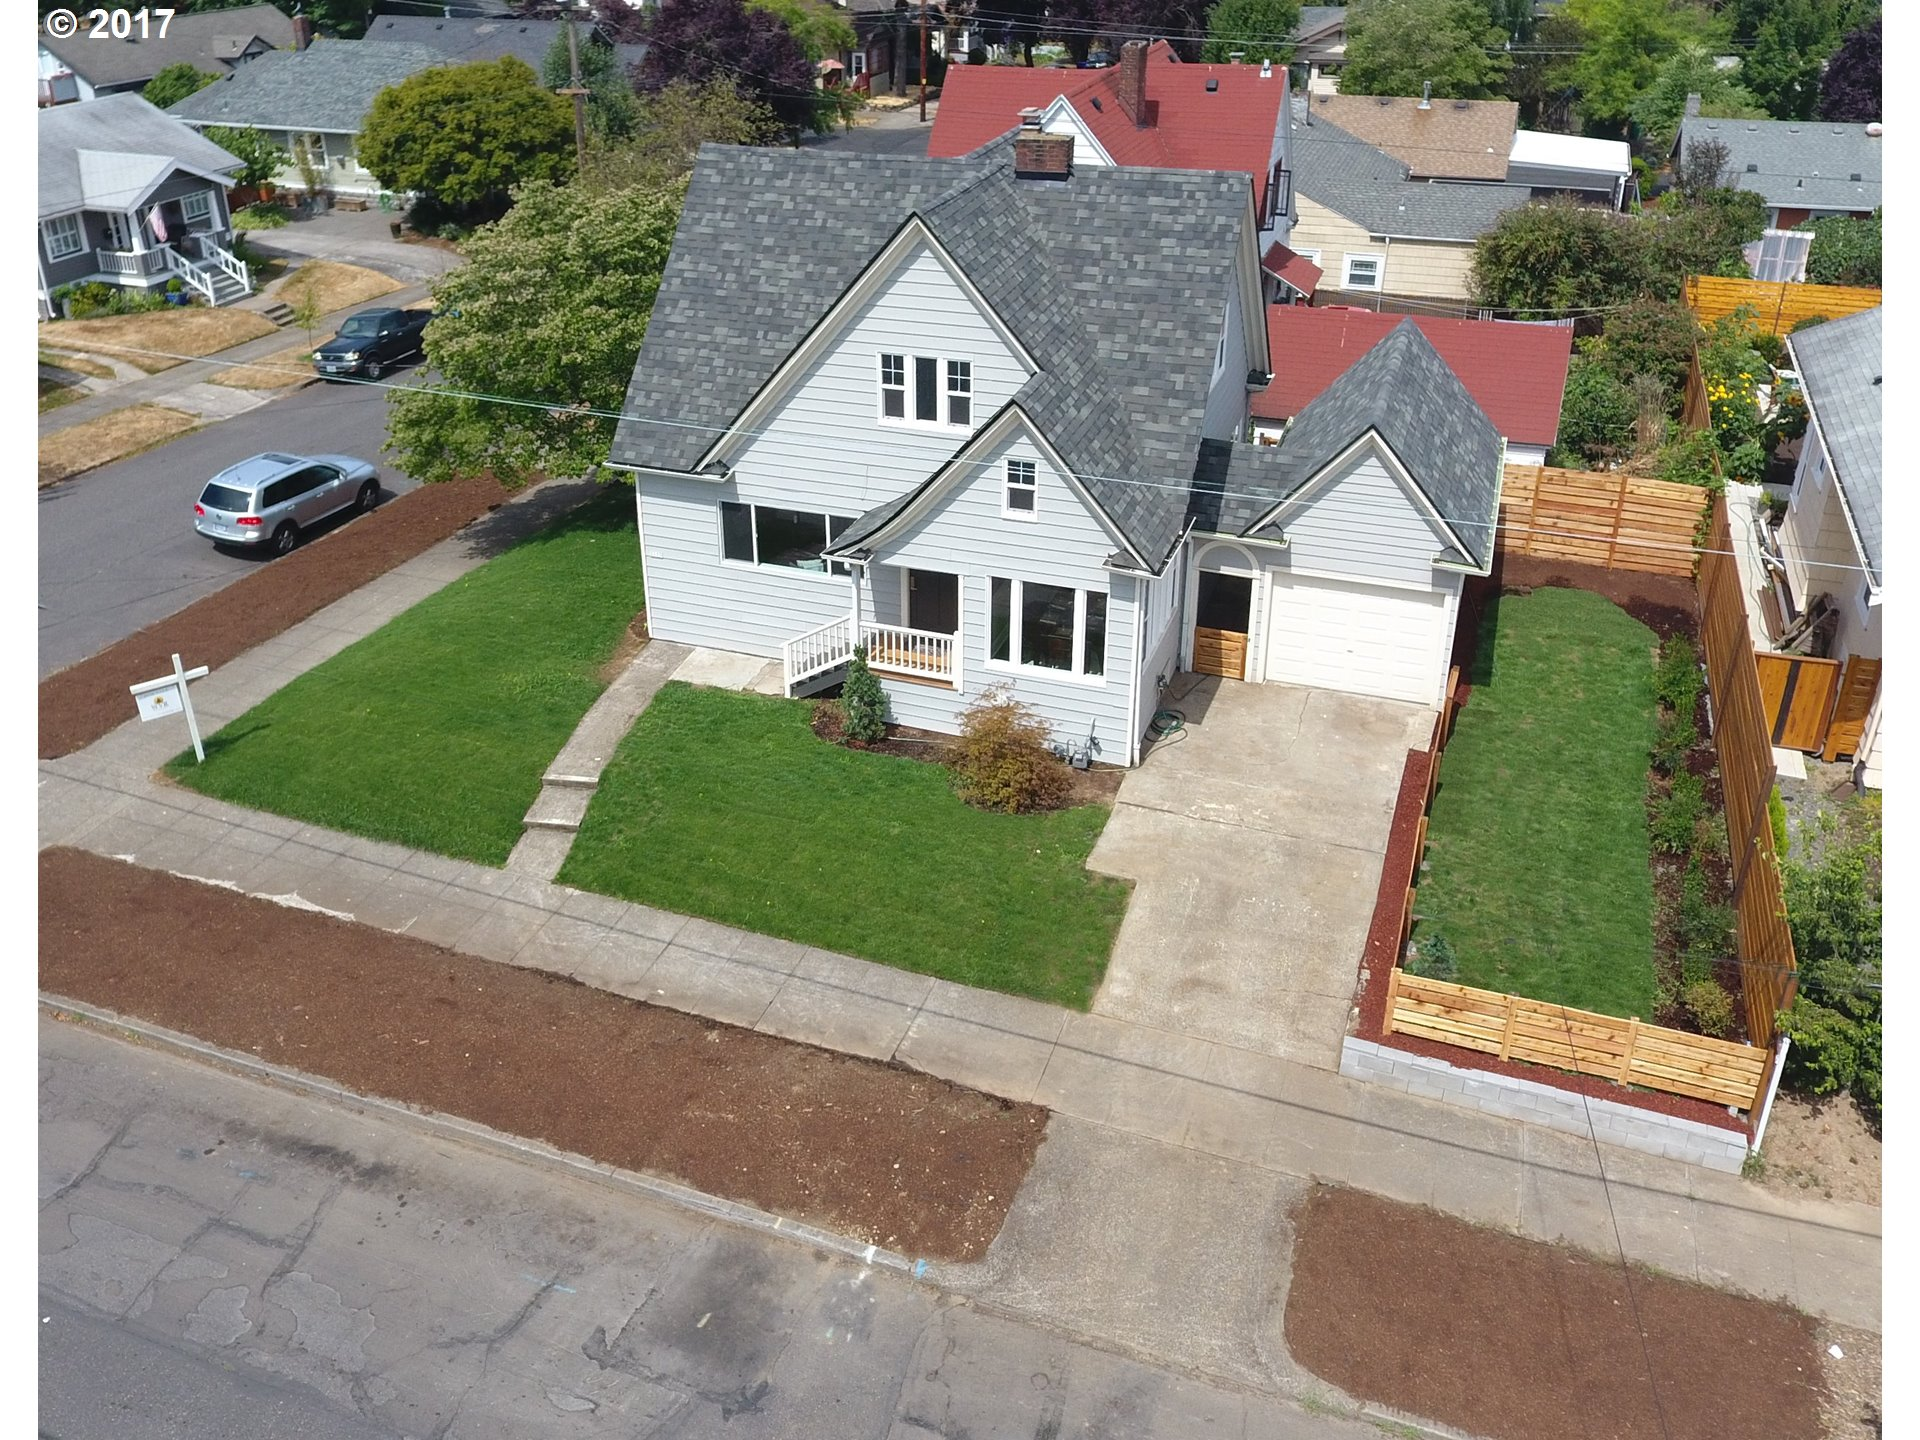 Excellent location 5 Blocks to Kenton Park and Bars, Dining, Coffee, & Shopping! Remodeled, ***3 Bedroom + Den*** New 30 Year Roof, New Sewer Line, New Hi-Efficiency Gas Furnace, New Windows, New Lighting, New Kitchen Cabinets with slab Granite & Stainless Appliances. Refinished Floors, Copper Plumbing, No Oil Tank.  Walk Score of 83 & Bike Score of 96!